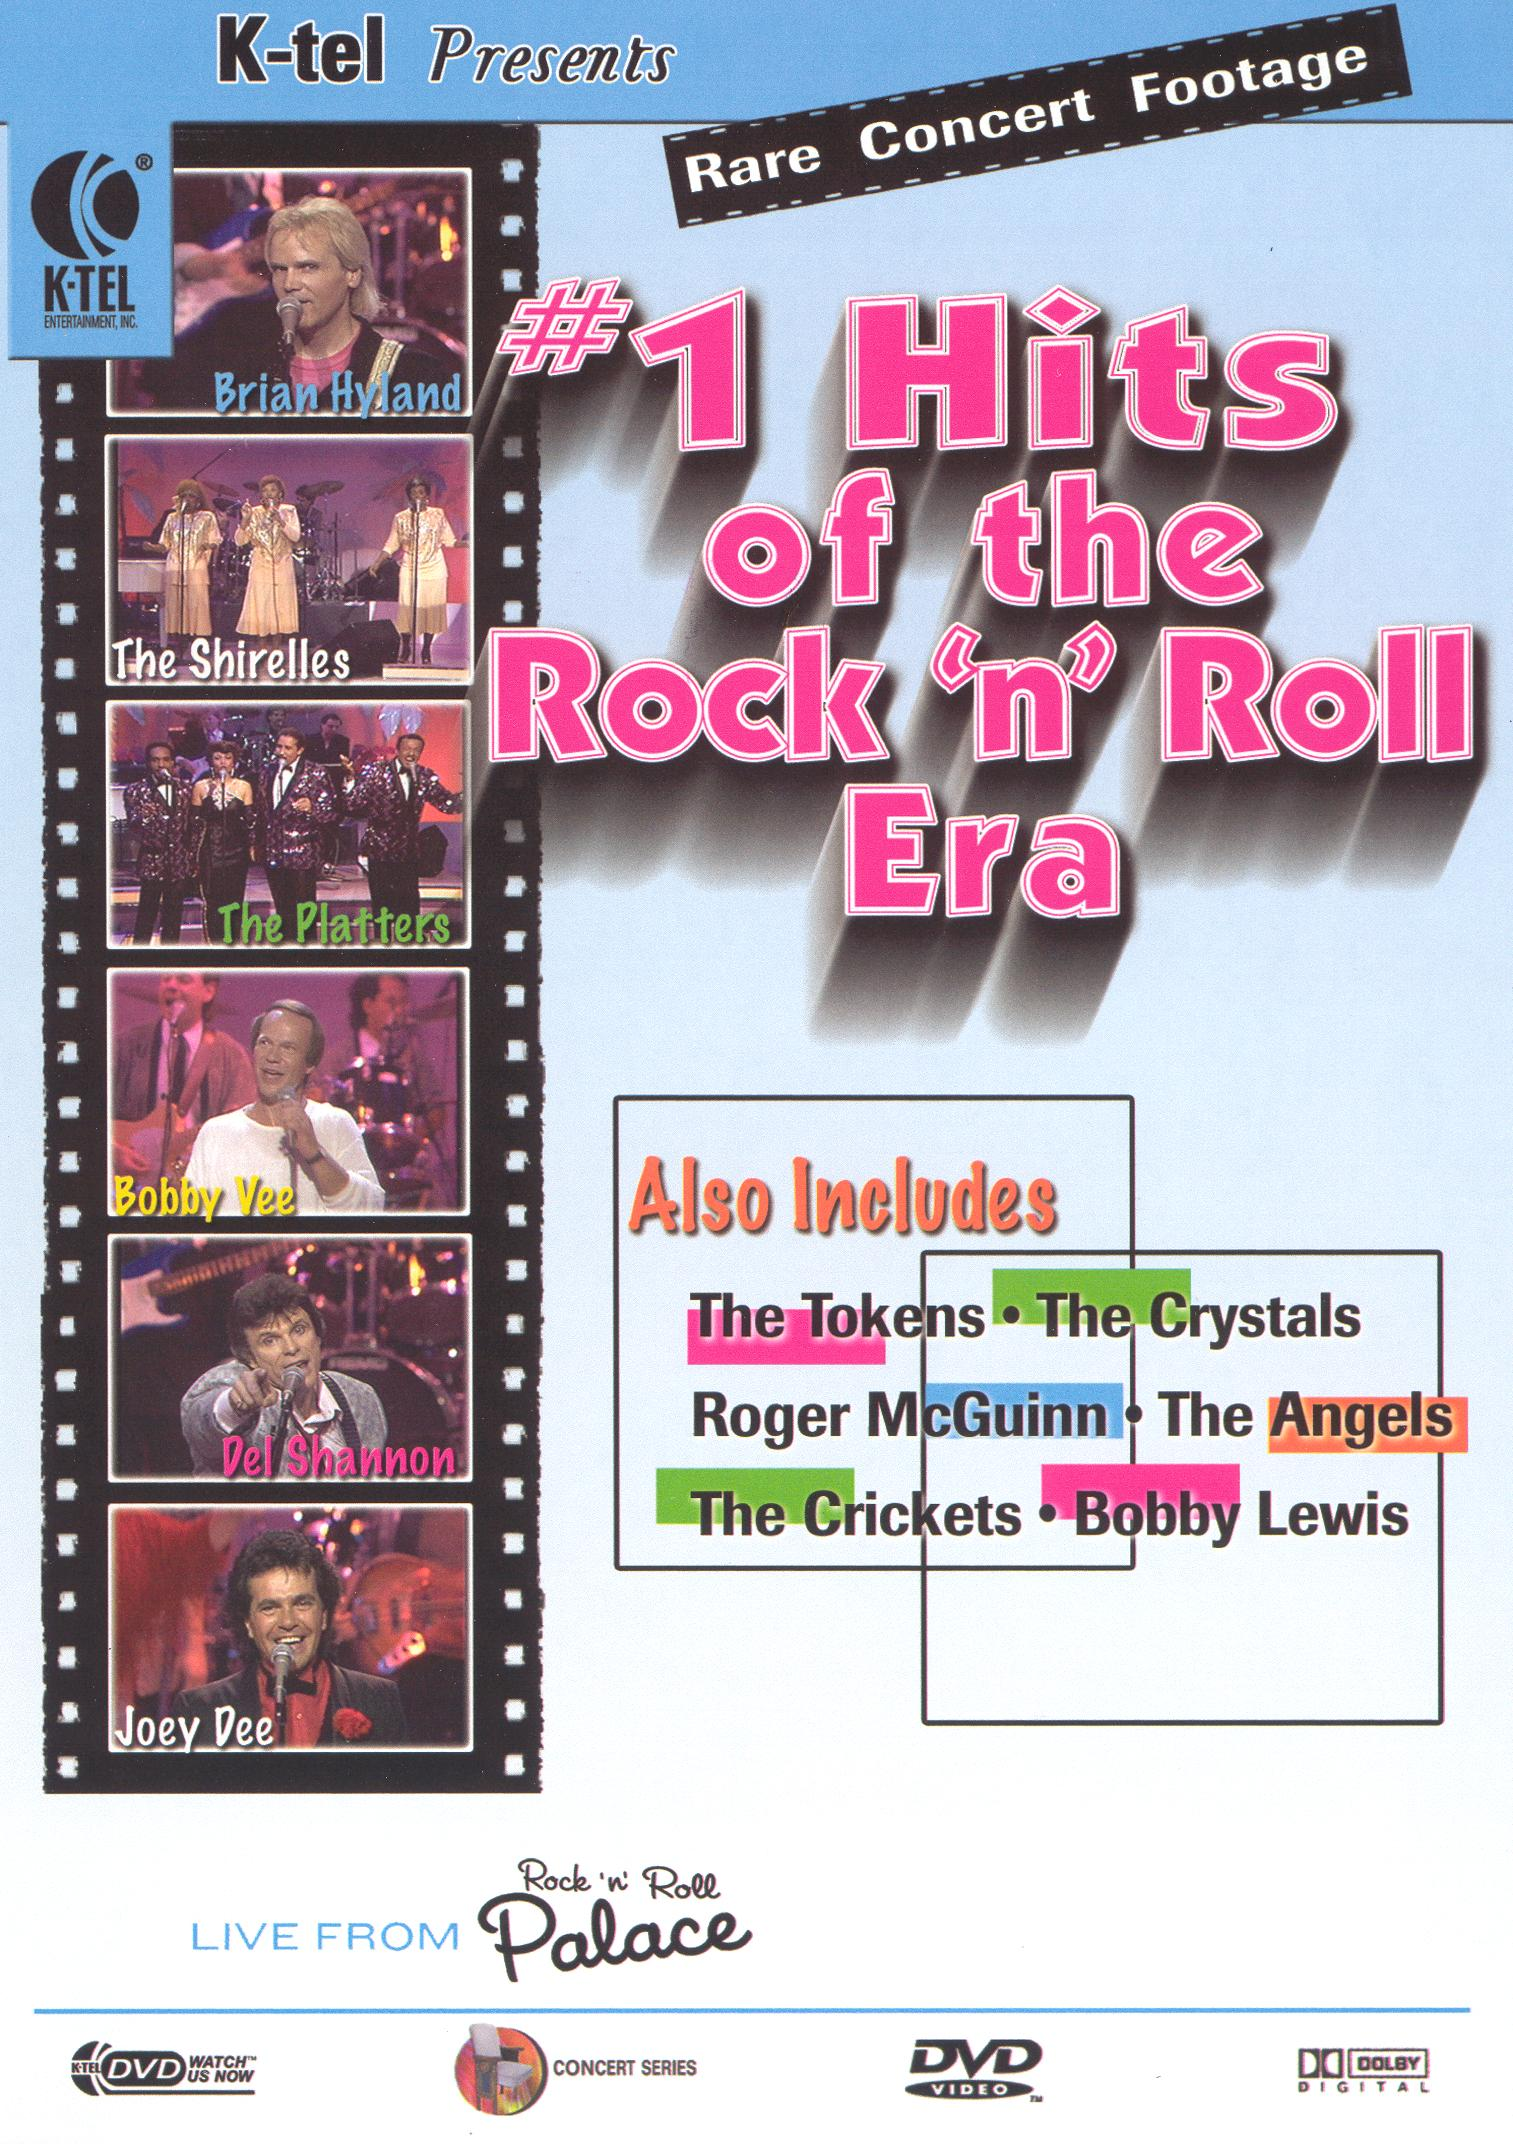 Live from the Rock 'n' Roll Palace: #1 Hits of the Rock 'n' Roll Era